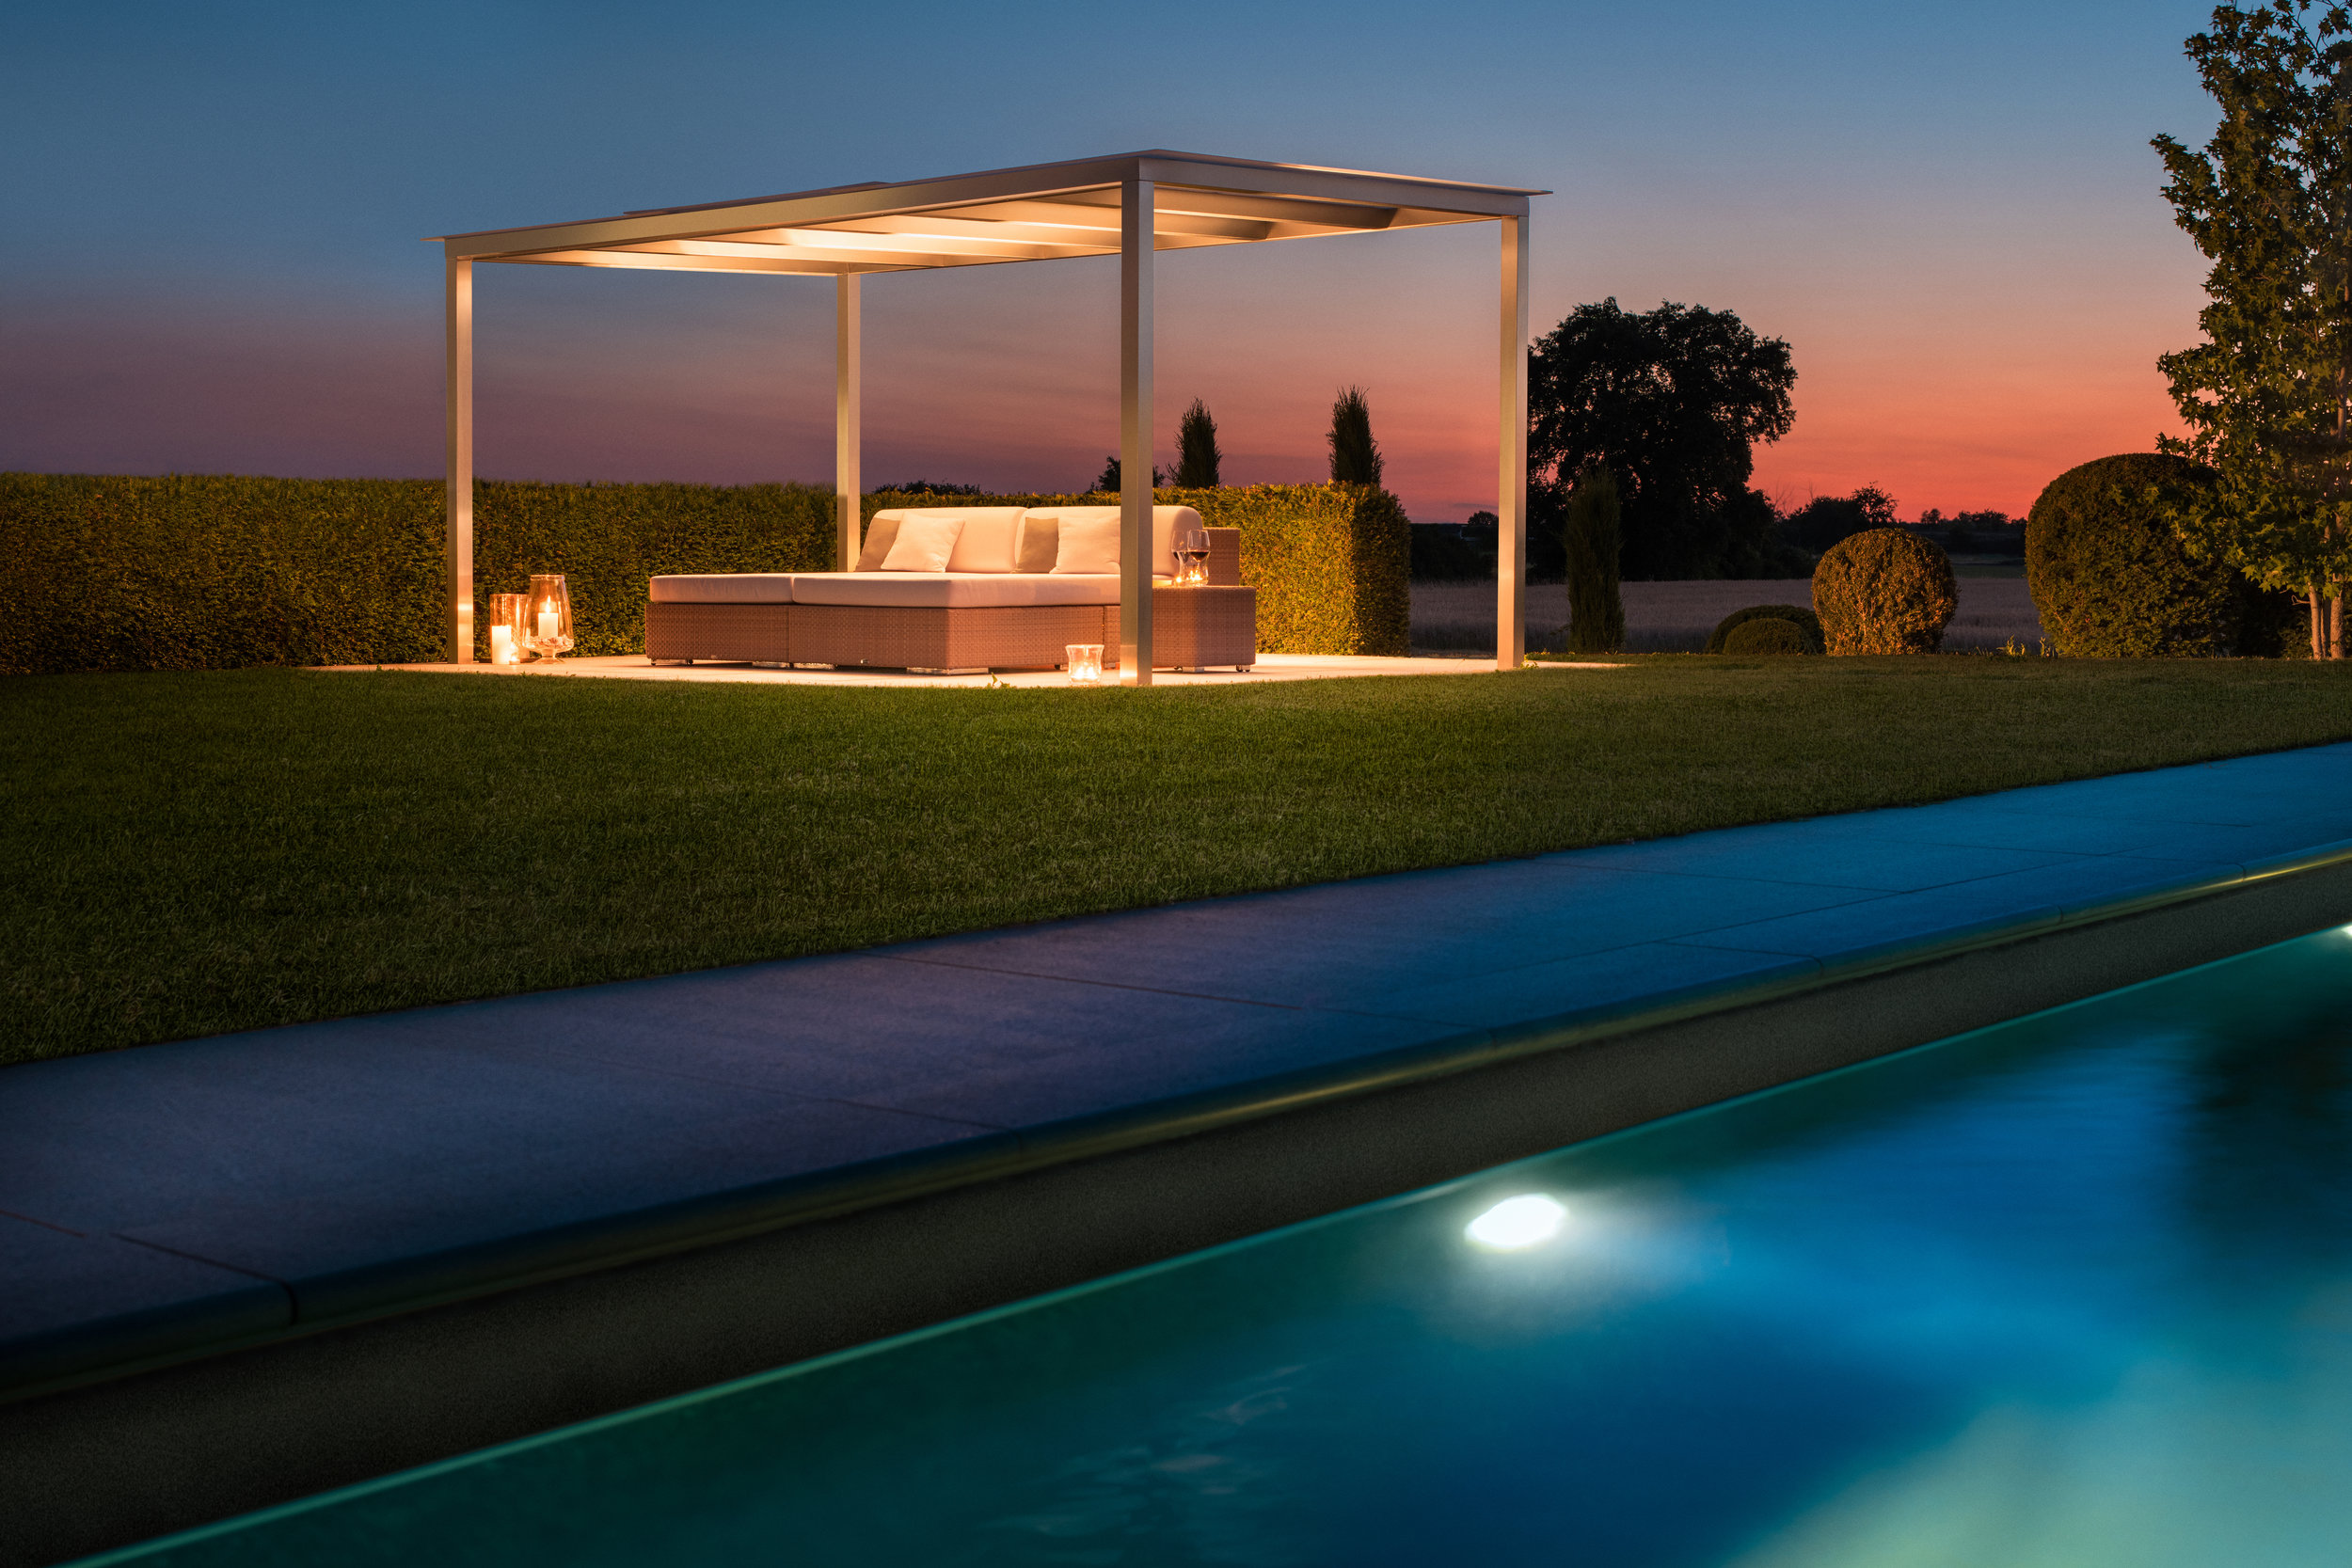 rewalux Pergola in stimmungsvoller Abendstimmung am Pool